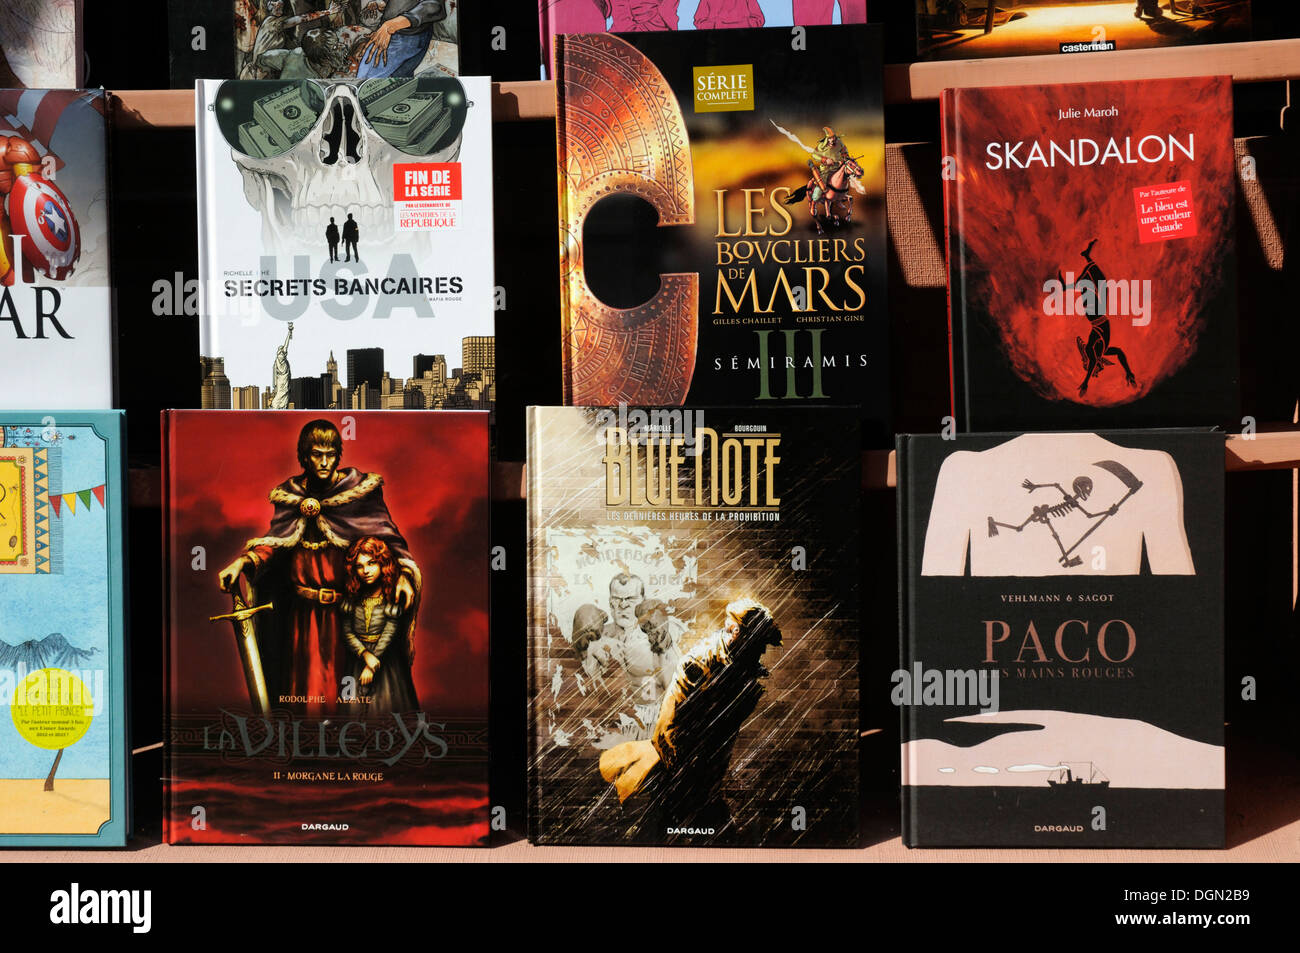 French graphic novels - Stock Image